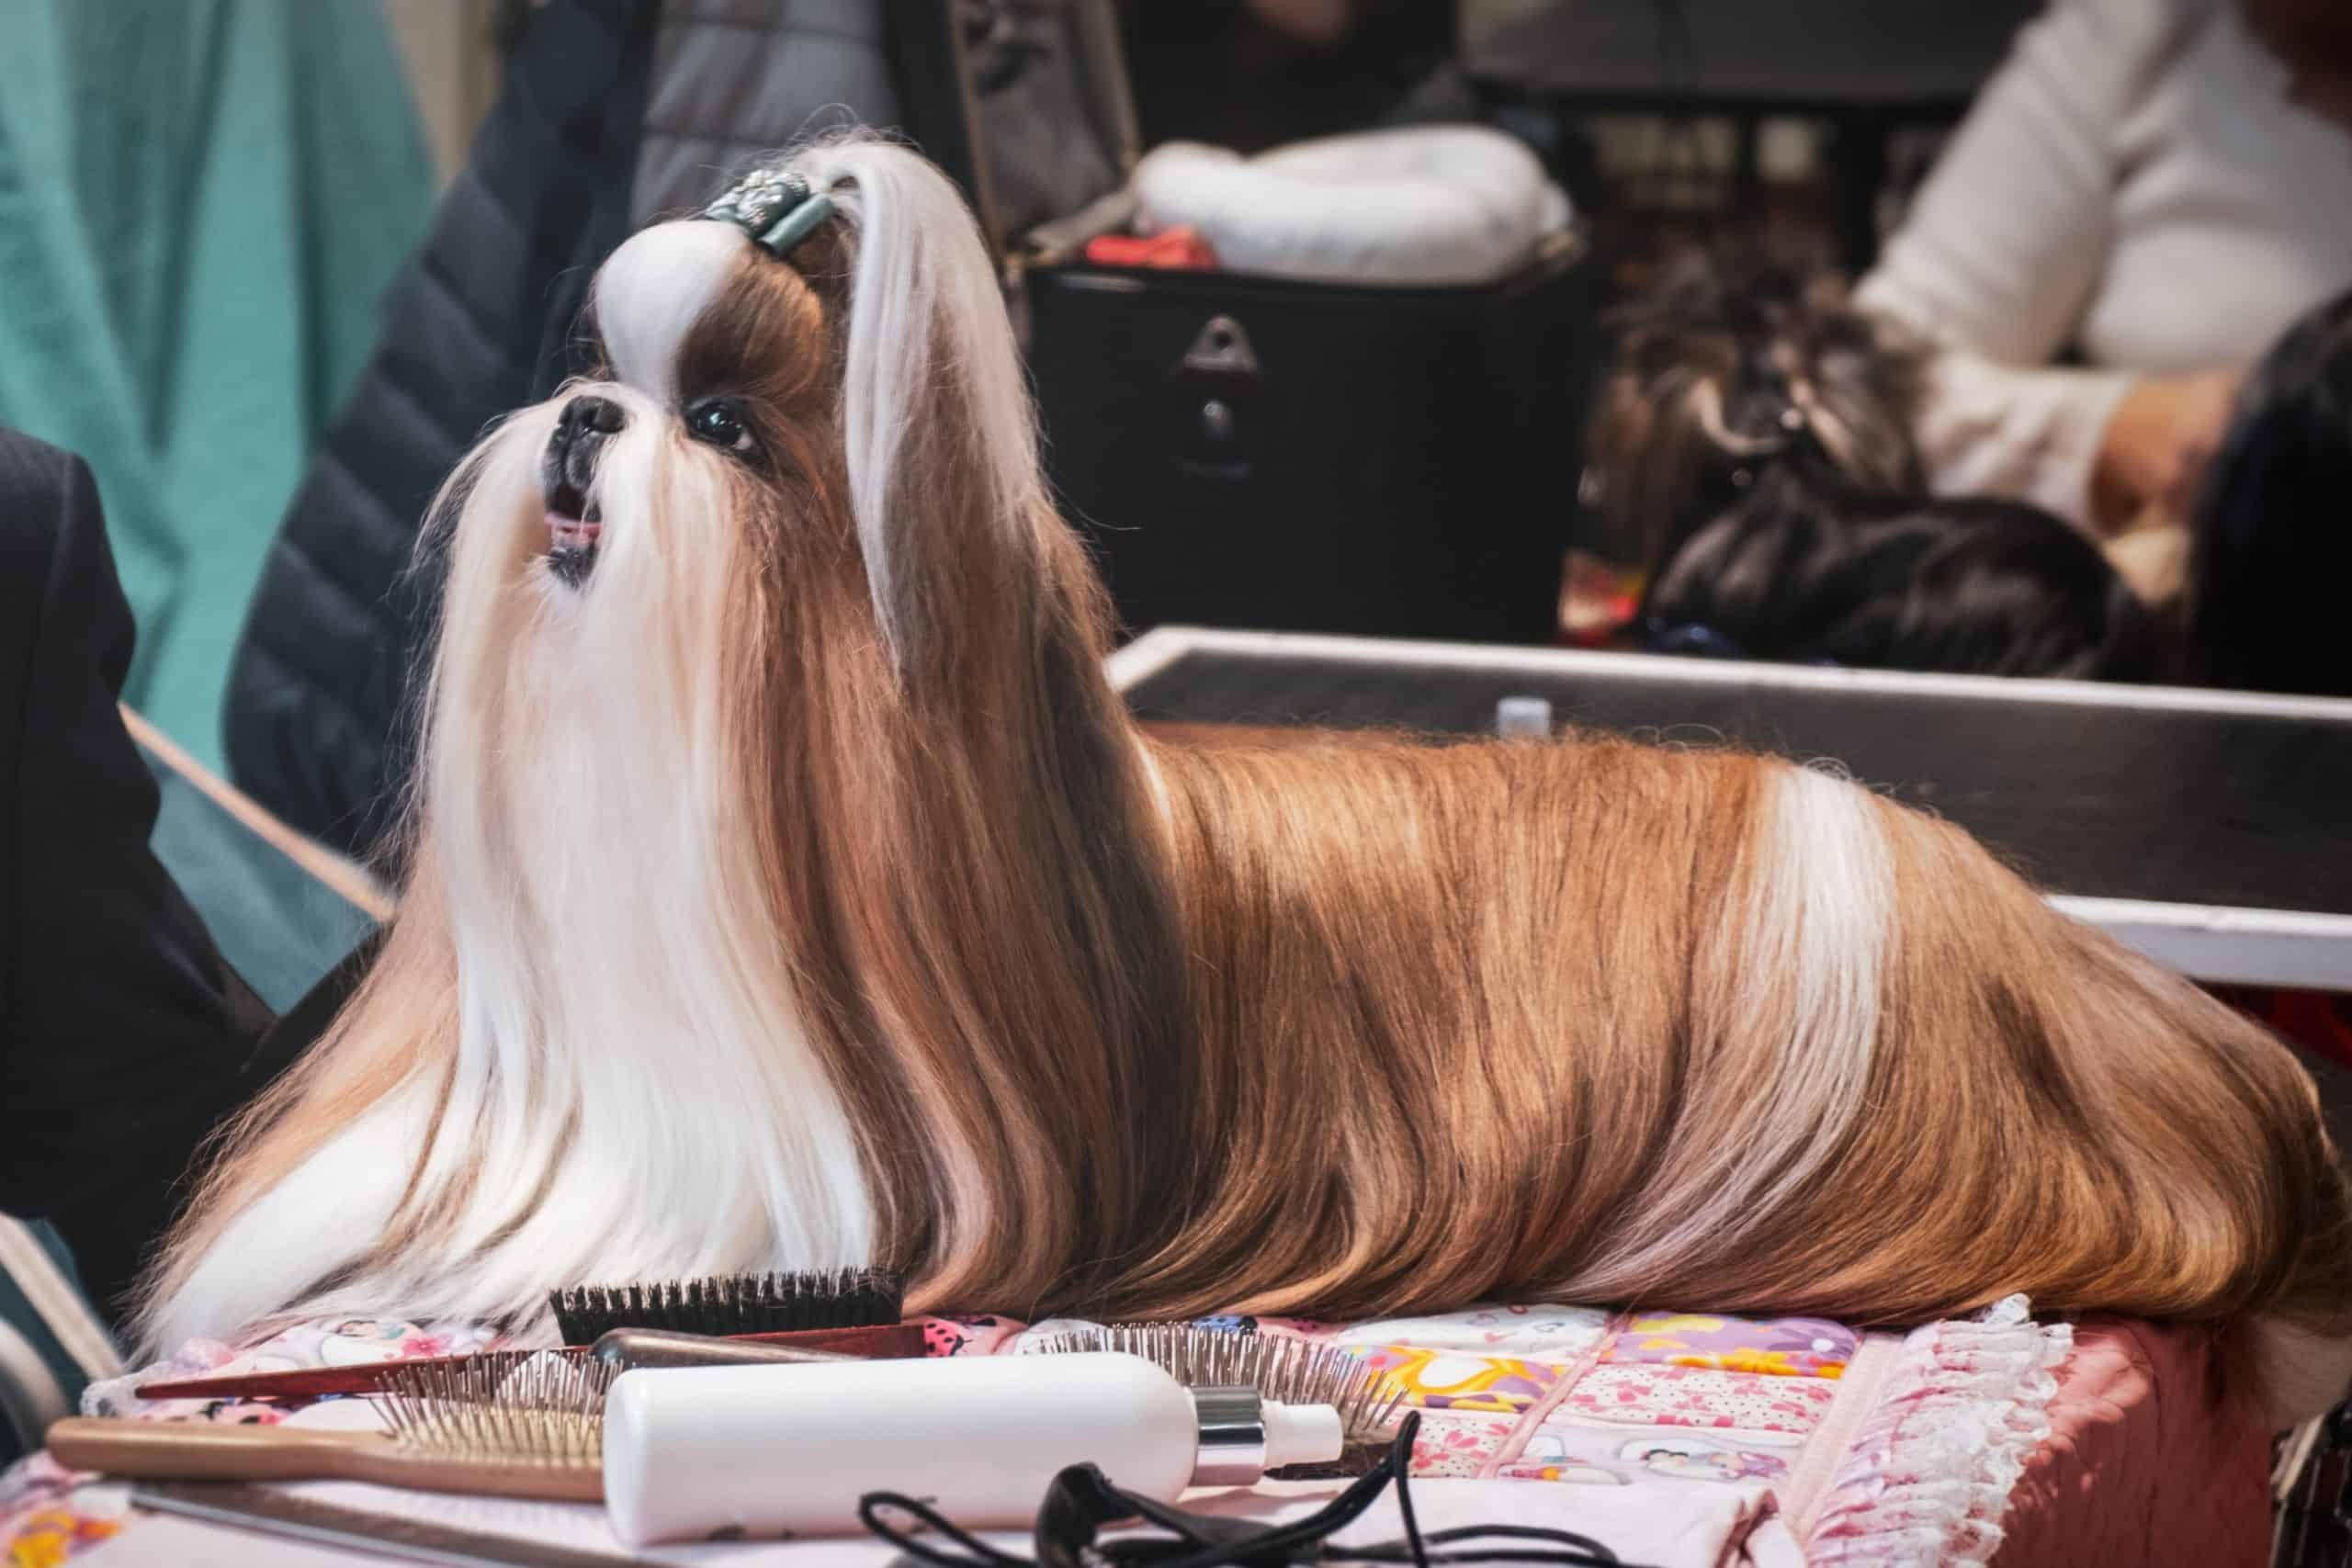 Lhasa Apso groomed at a dog show. The Lhasa Apso has a long and luxurious coat that can get tangled if not cared for properly. Daily brushing and monthly baths are highly recommended for these dogs.